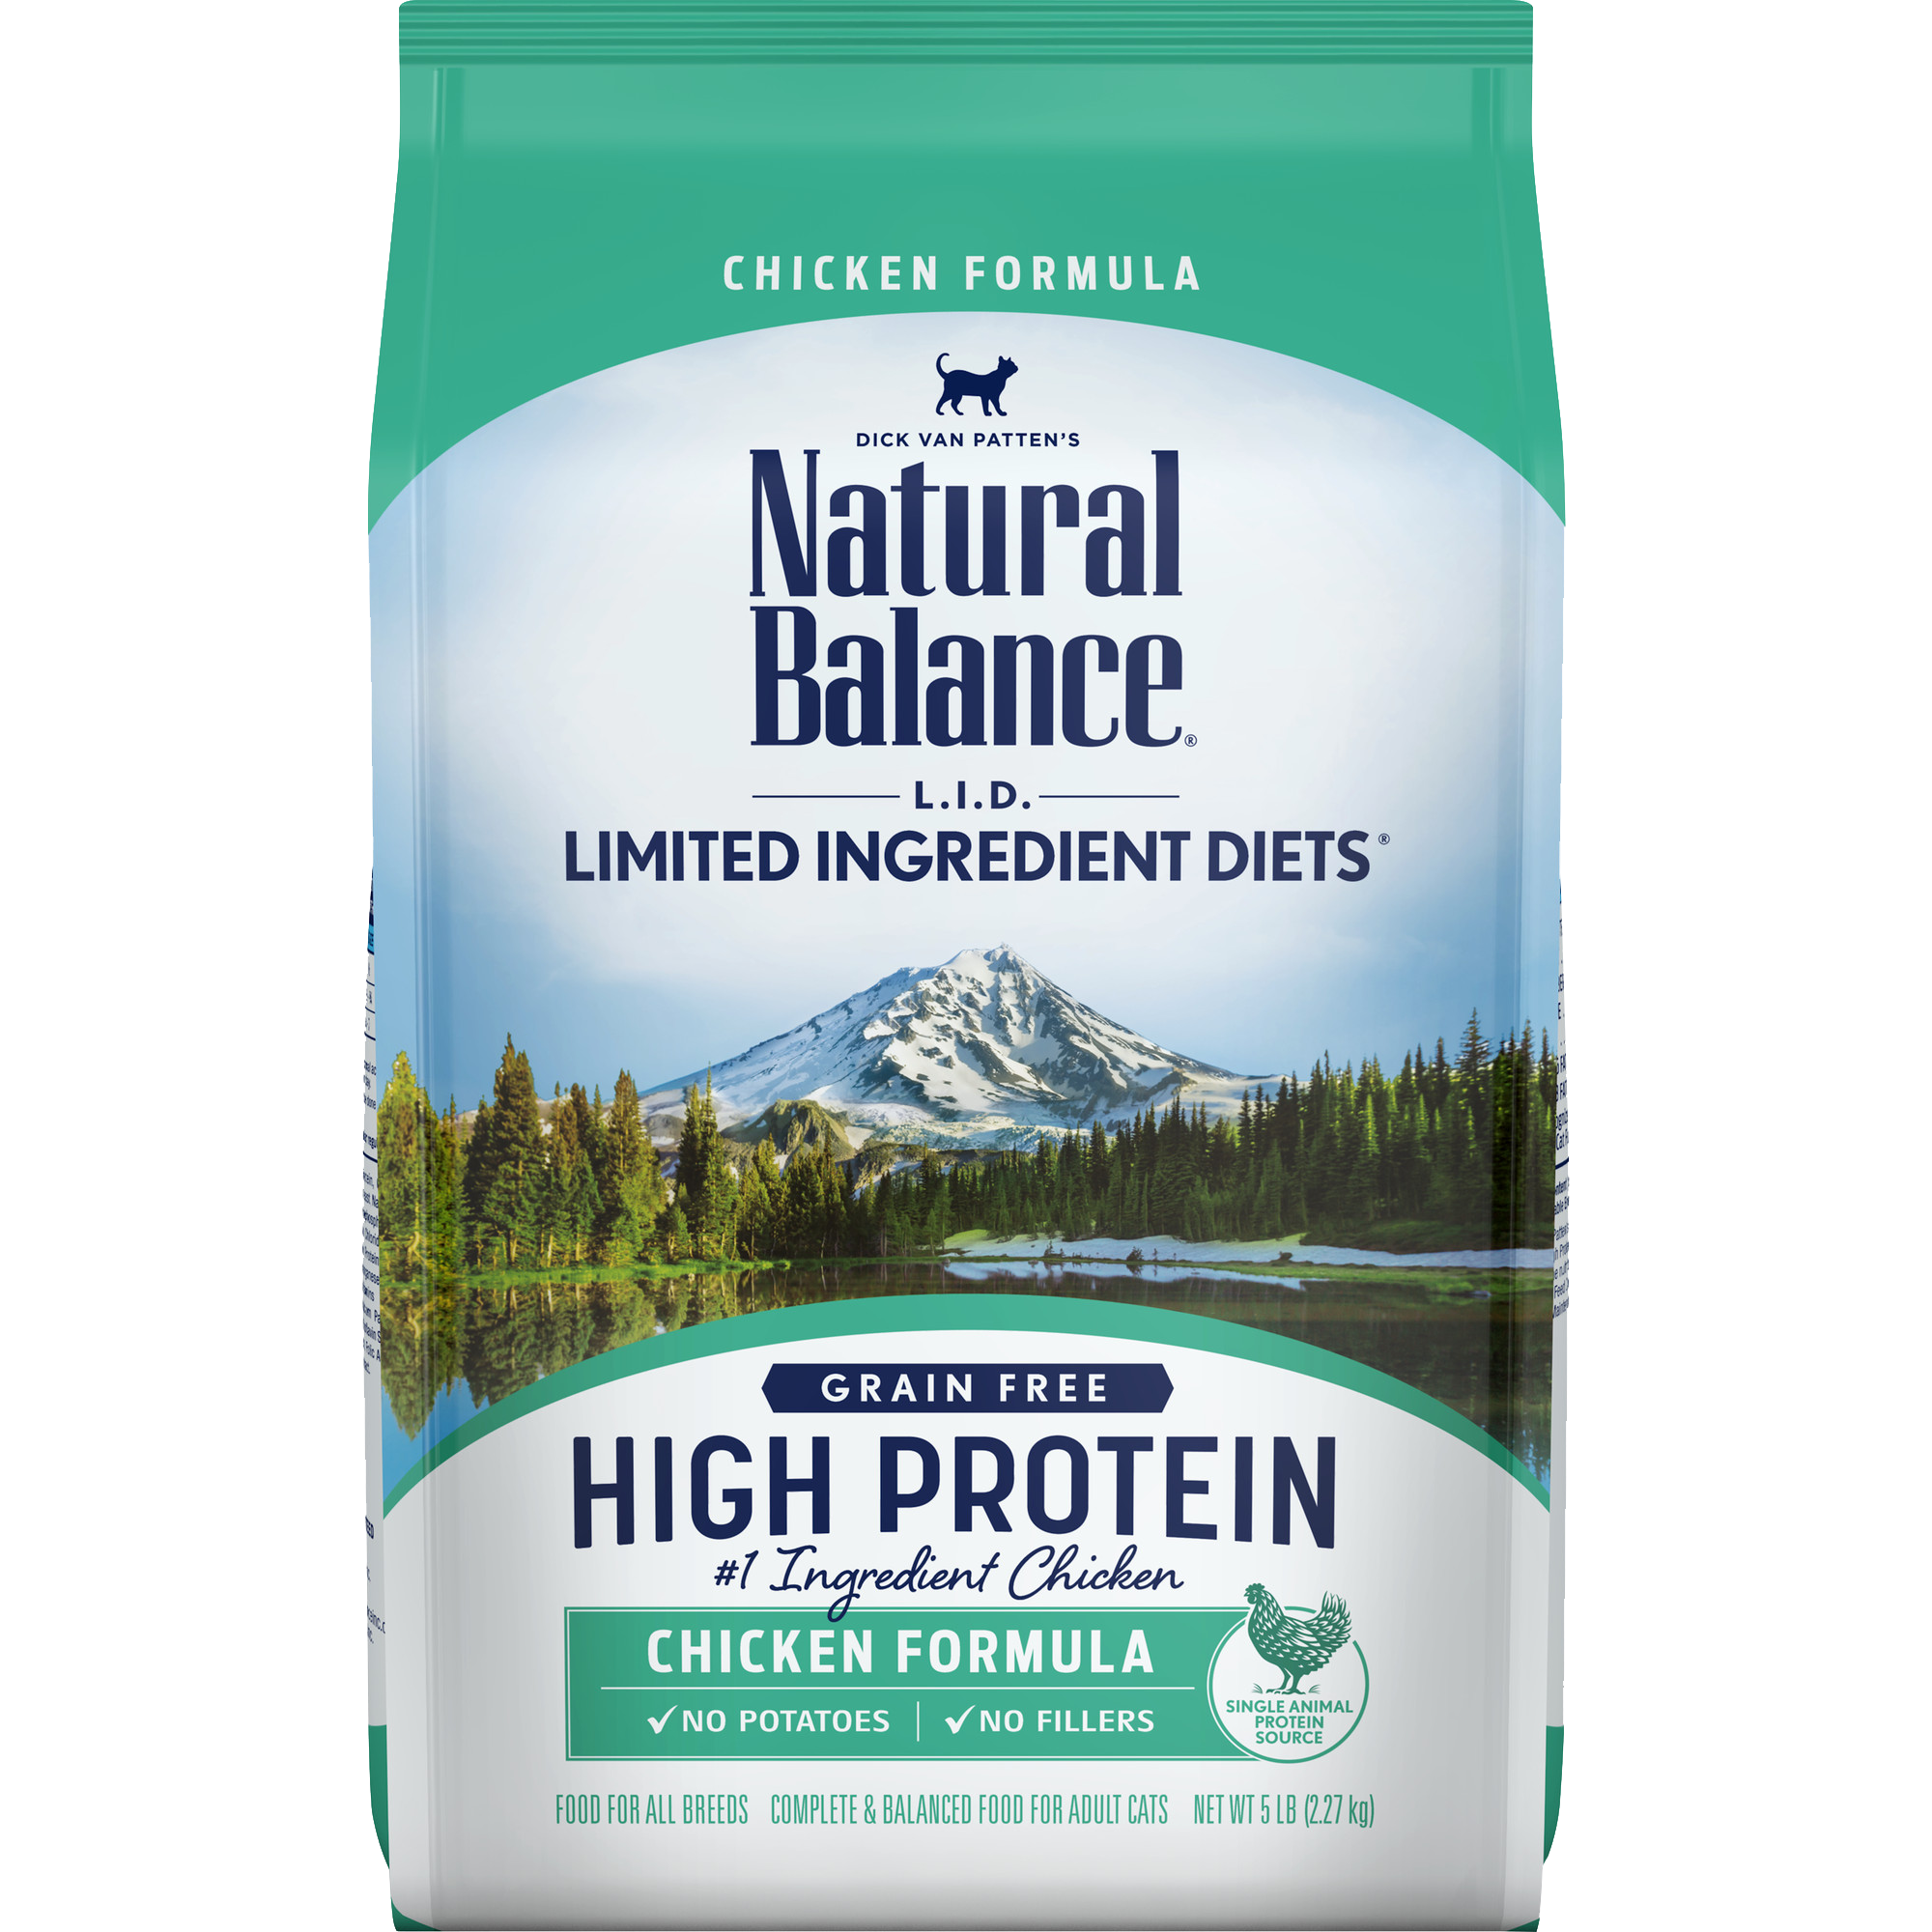 Natural Balance Natural Balance Limited Ingredient Diet High Protein Chicken Dry Cat Food